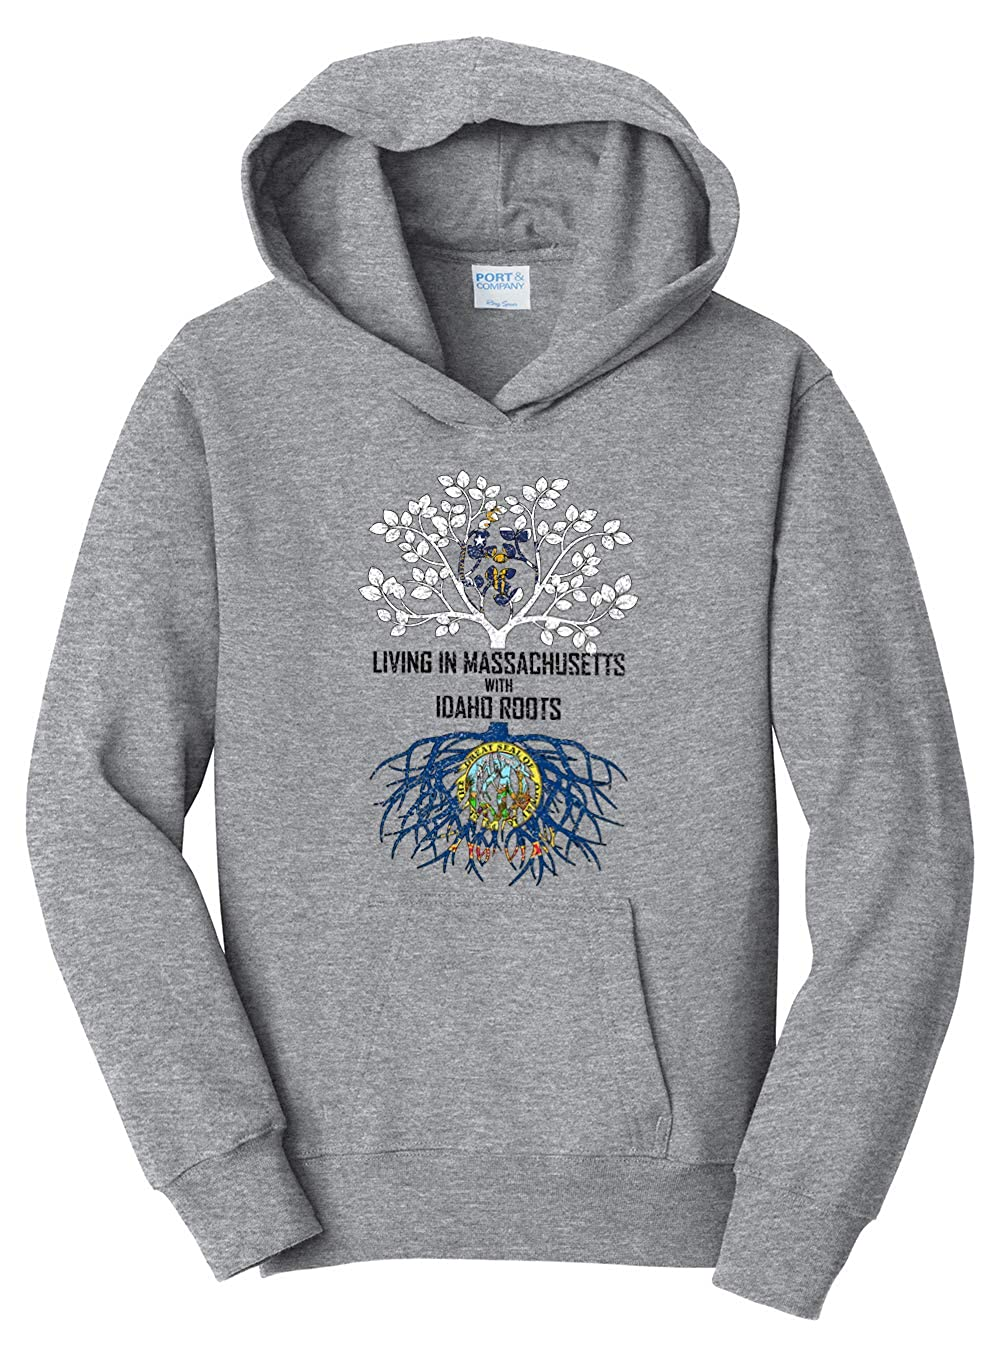 Tenacitee Girls Living in Massachusetts with Idaho Roots Hooded Sweatshirt